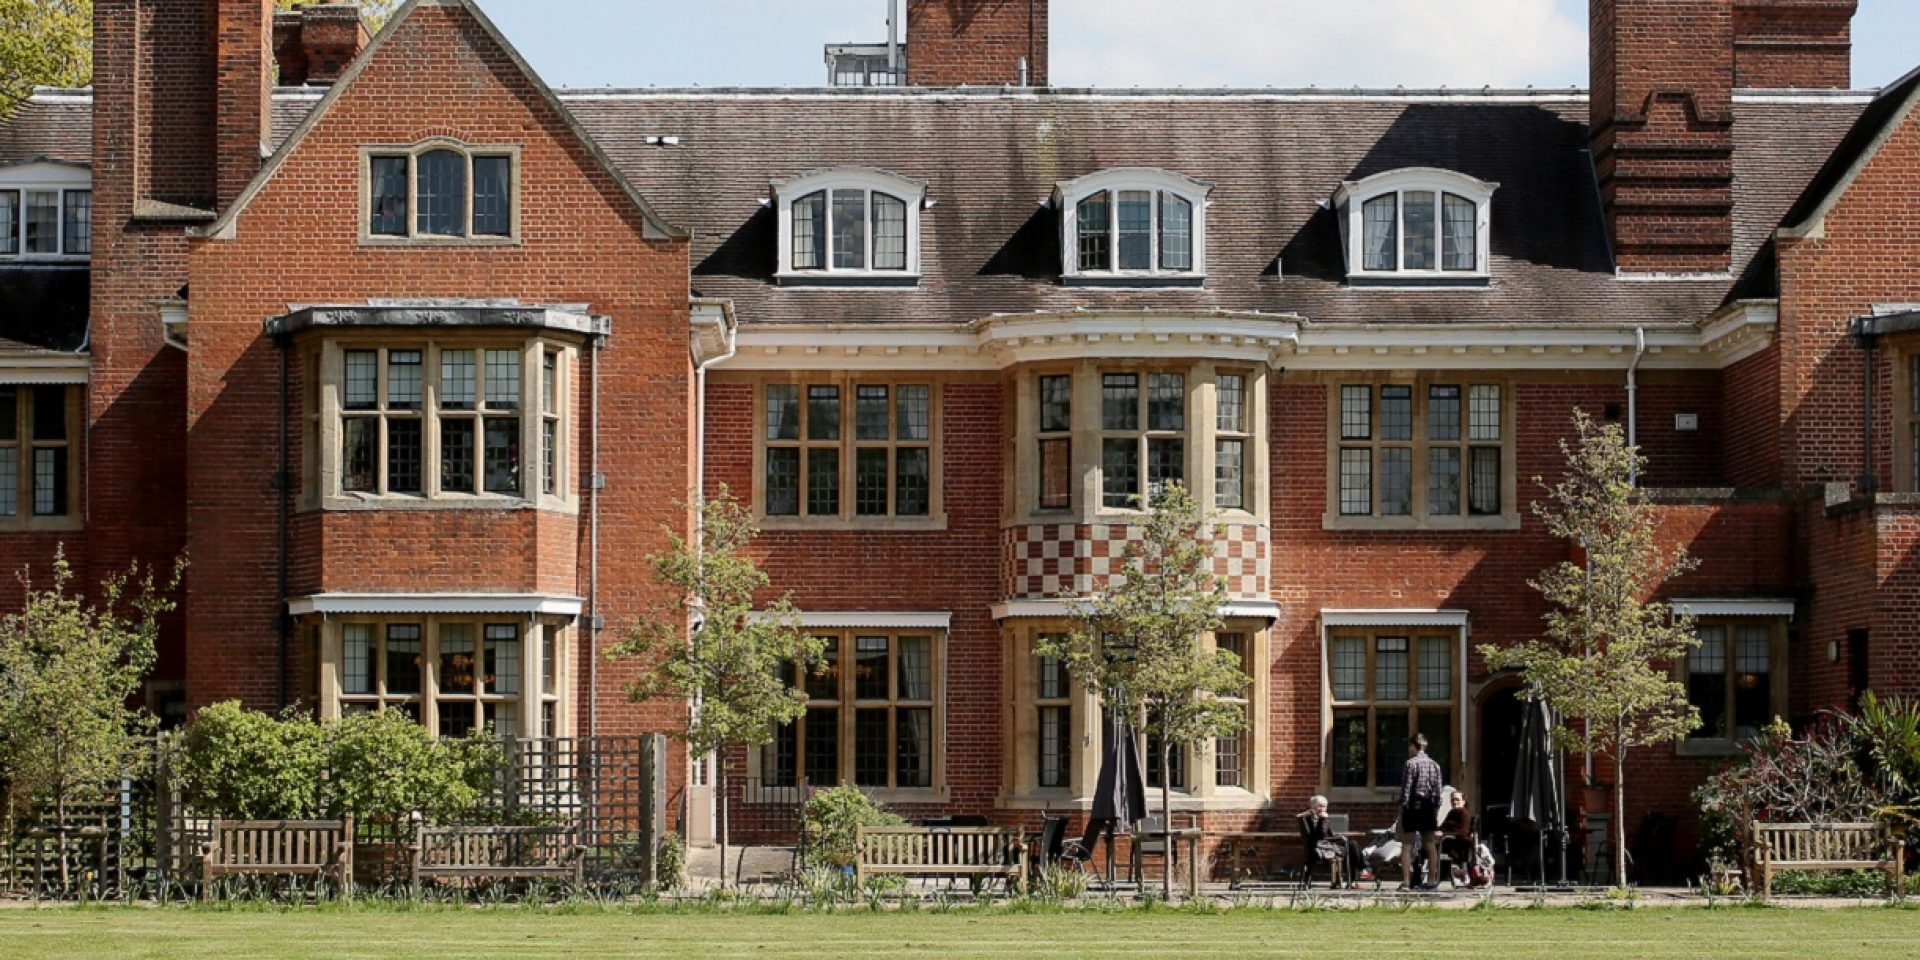 Glebelands Care Home in Wokingham Acquired by Greensleeves Care